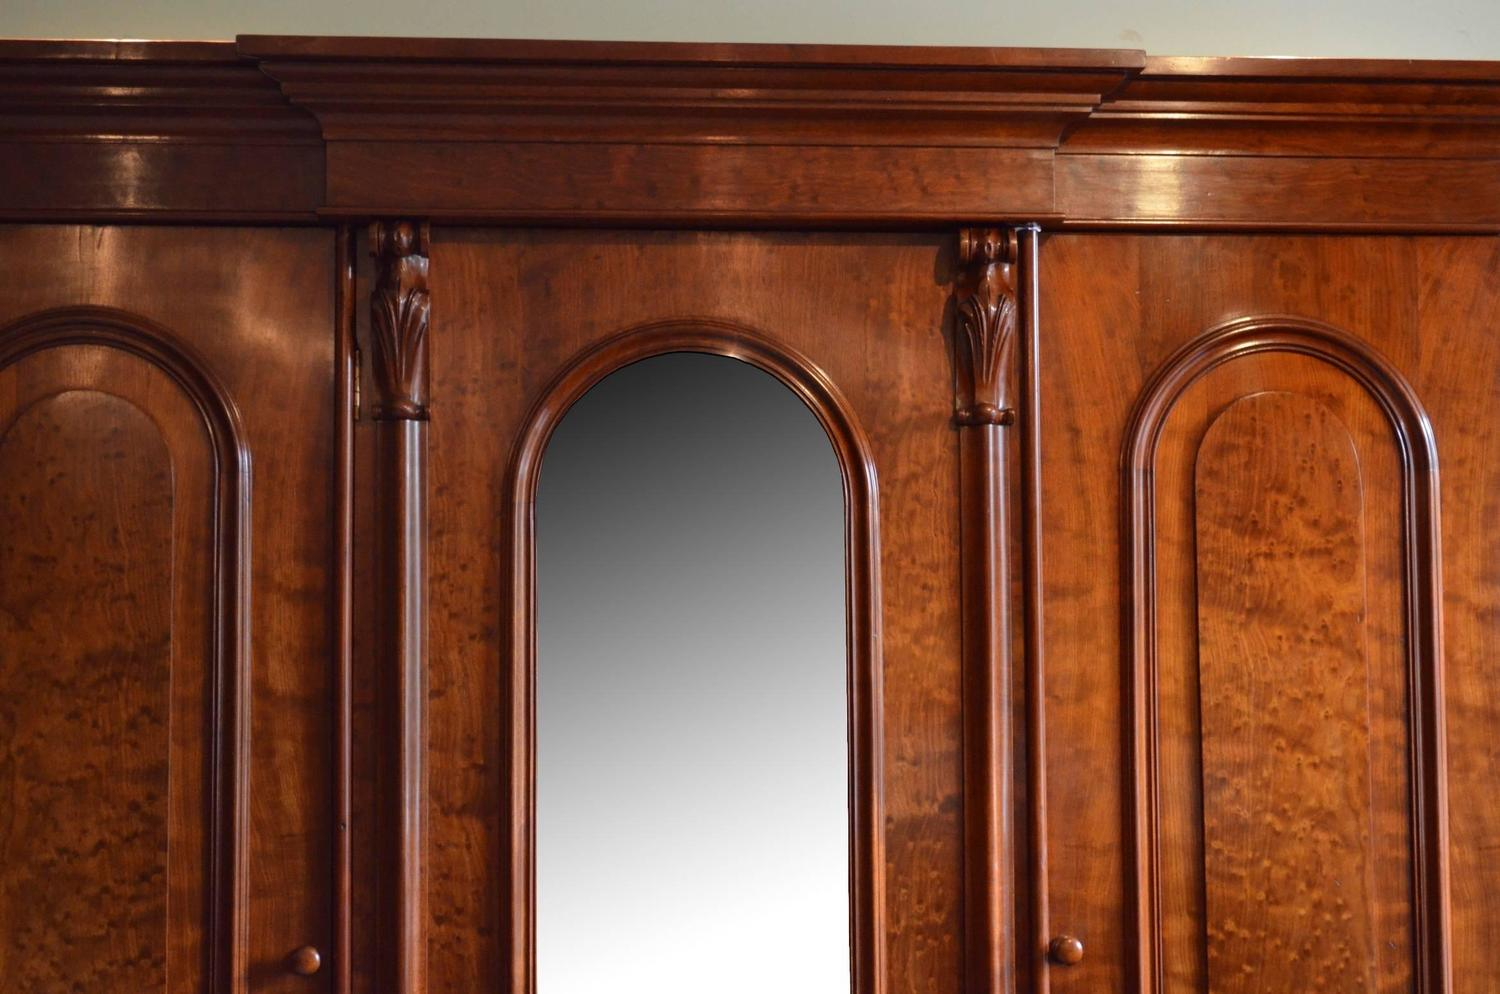 994 #AF5019 Fine Quality Victorian Mahogany Wardrobe Three Door Wardrobe For Sale  pic Quality Entry Doors 43411500